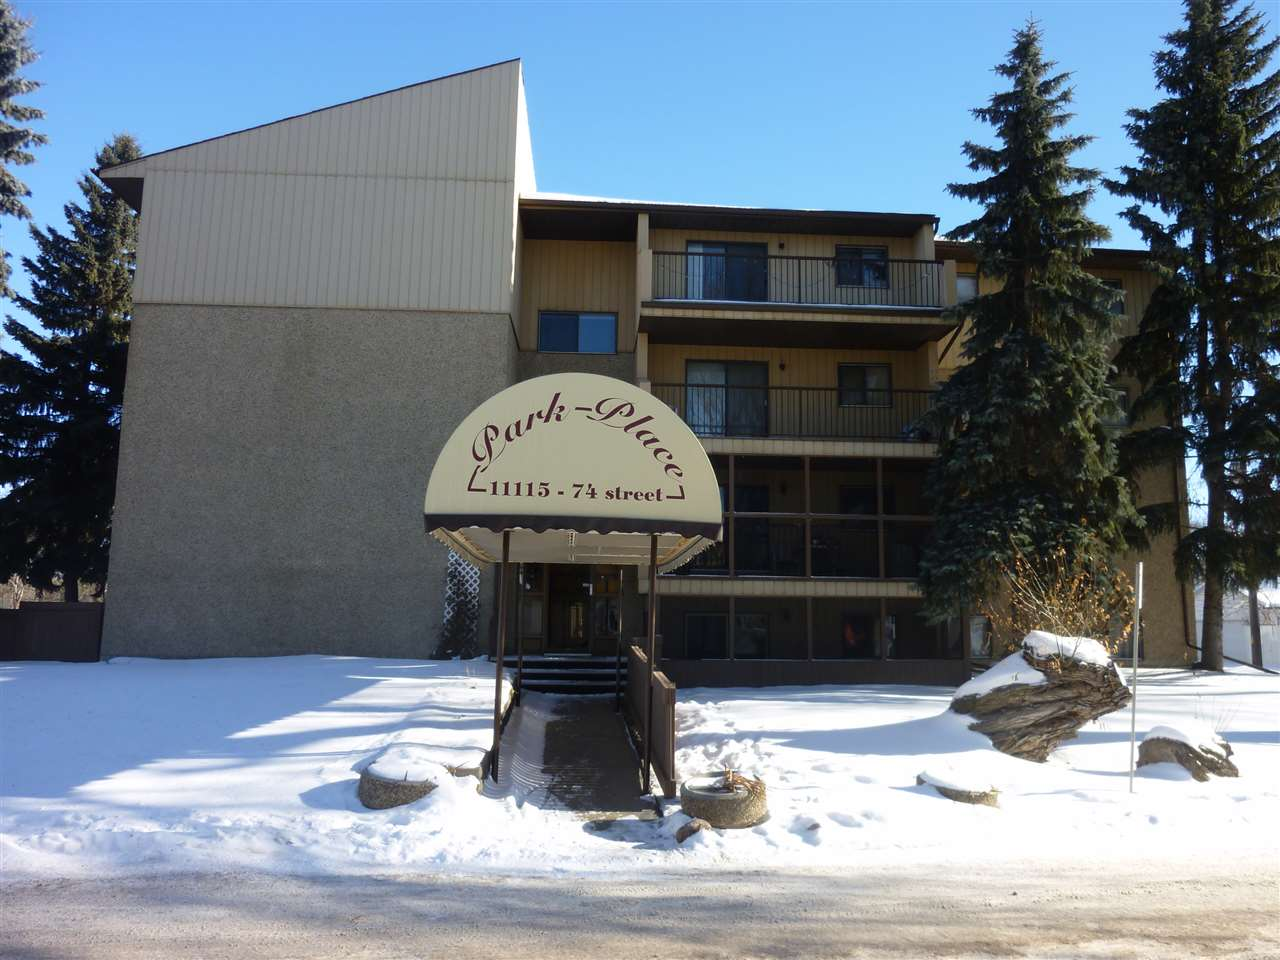 JUST STEPS AWAY FROM CONCORDIA UNIVERSITY with quick access to the Gretzky, Yellowhead and LRT.  This 1 bedroom, 1 bath conveniently located in Virginia Park might just be for you. Features a lovely upgraded kitchen with granite countertops.  Across the street from Borden Park and close to the river valley and walking trails.  This 18+ building offers a great floorplan,  screened balcony and same floor laundry.  Priced to sell!!